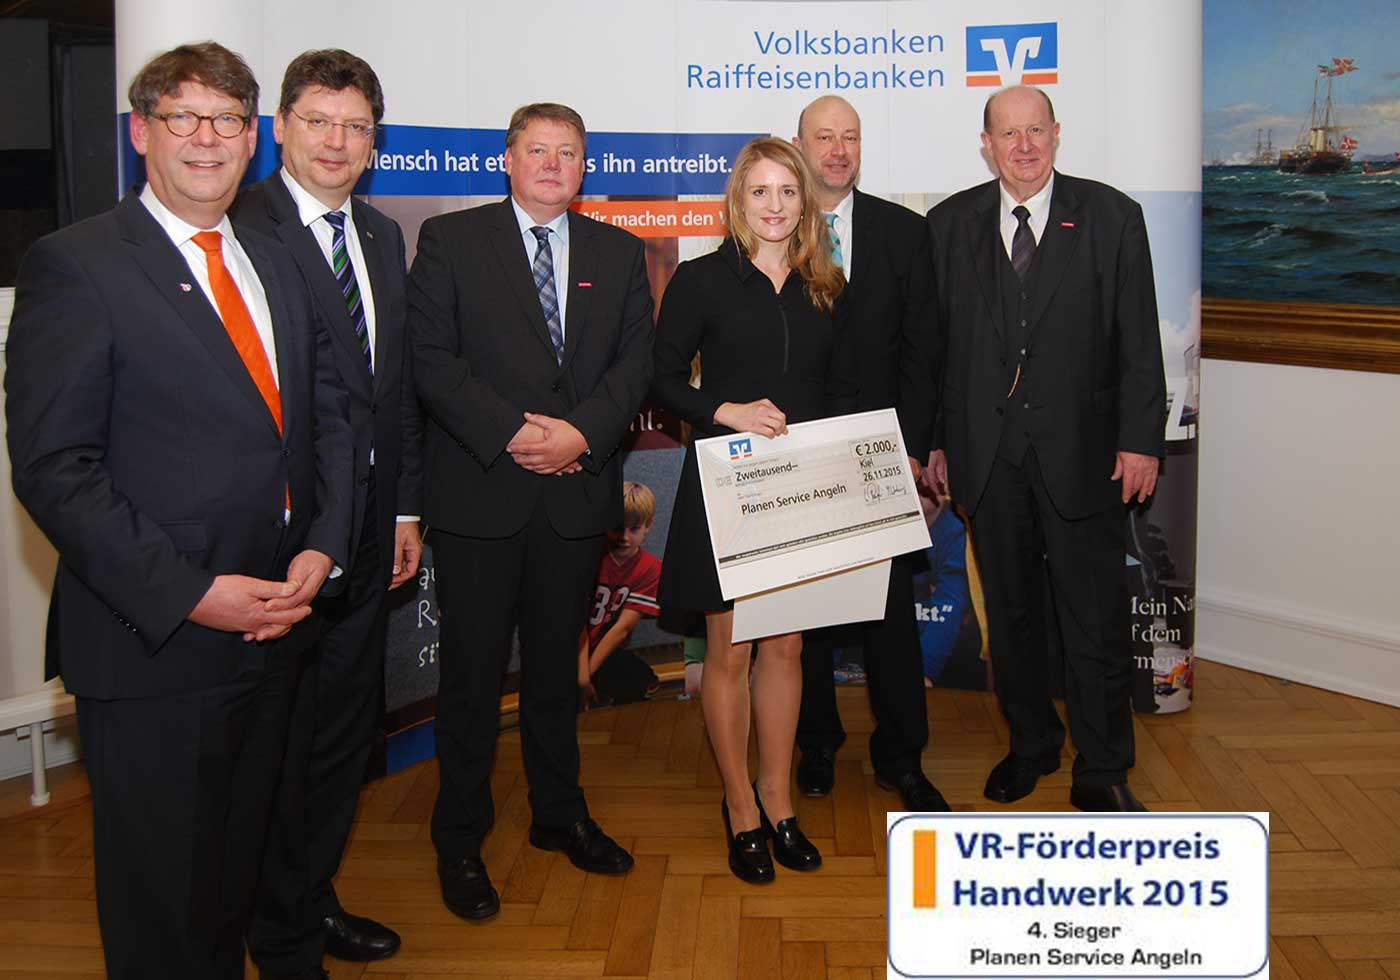 Presentation of the VR-advancement award to Christin Jensen, Planen Service Angeln, in Kiel